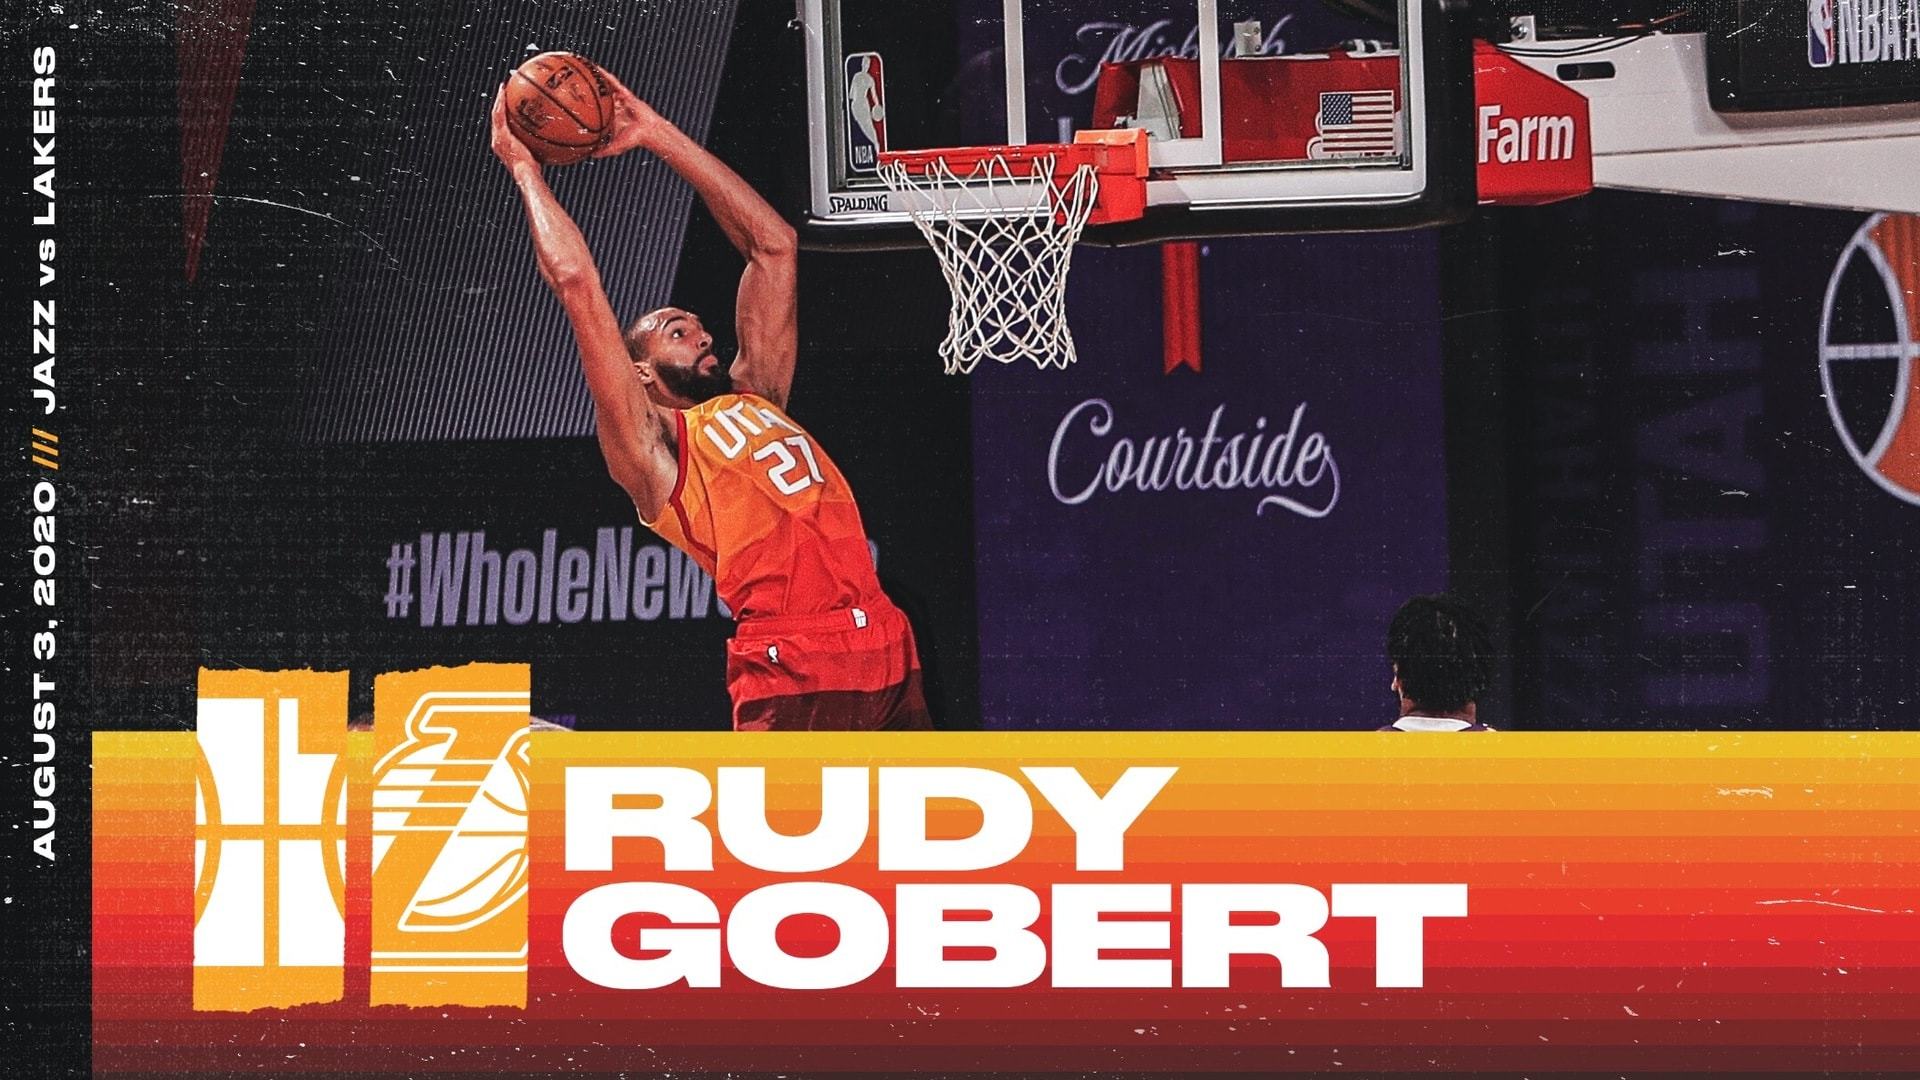 Highlights: Rudy Gobert—16 points, 13 rebounds